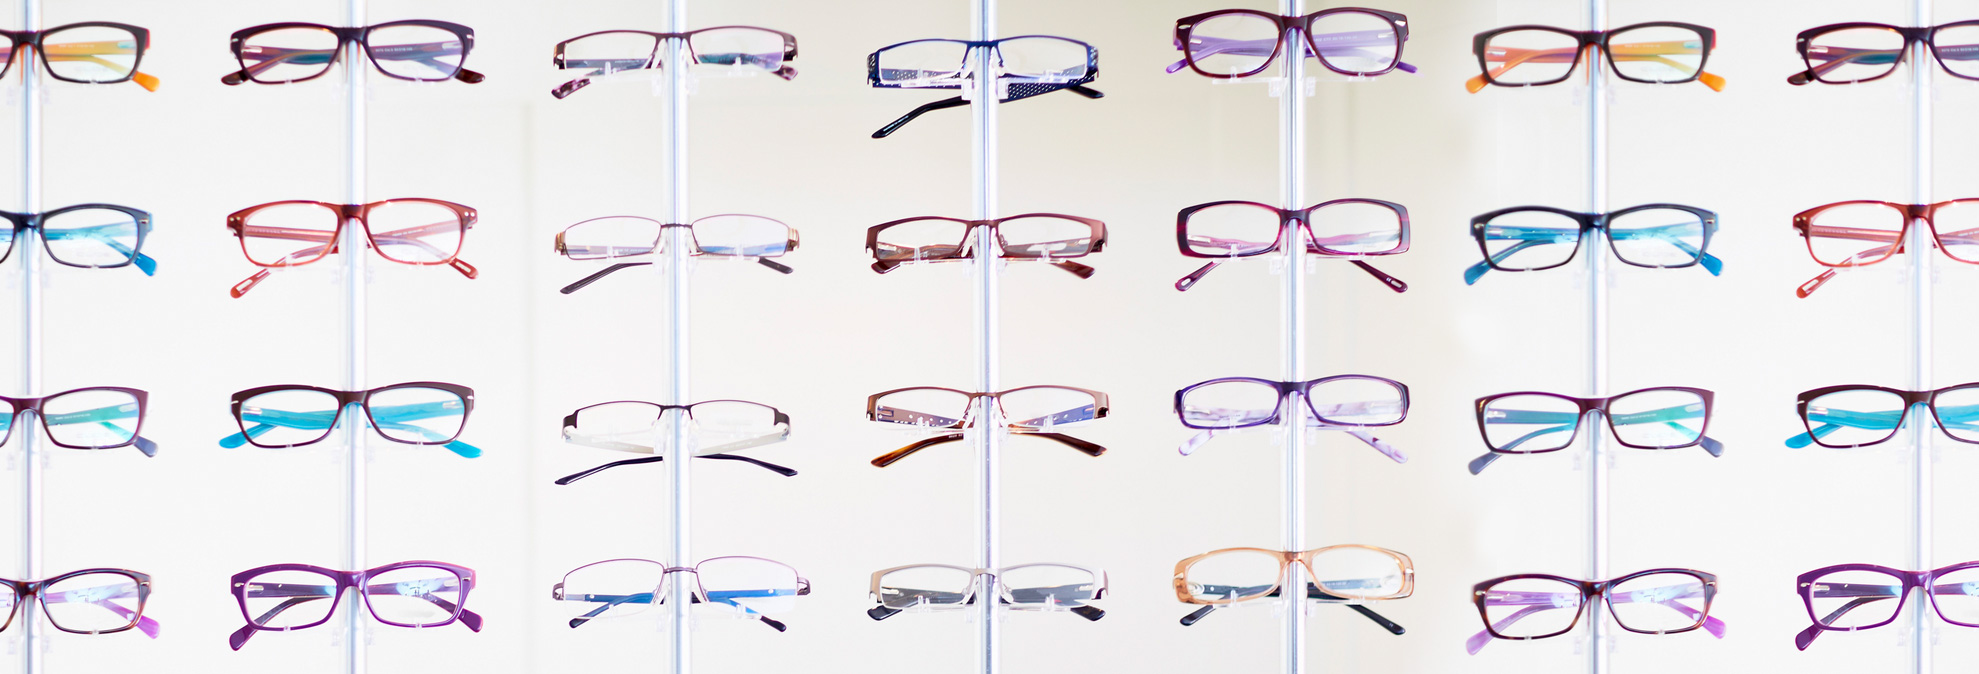 685e93e1260 8 Great Ways to Save on the Cost of Eyeglasses - Consumer Reports